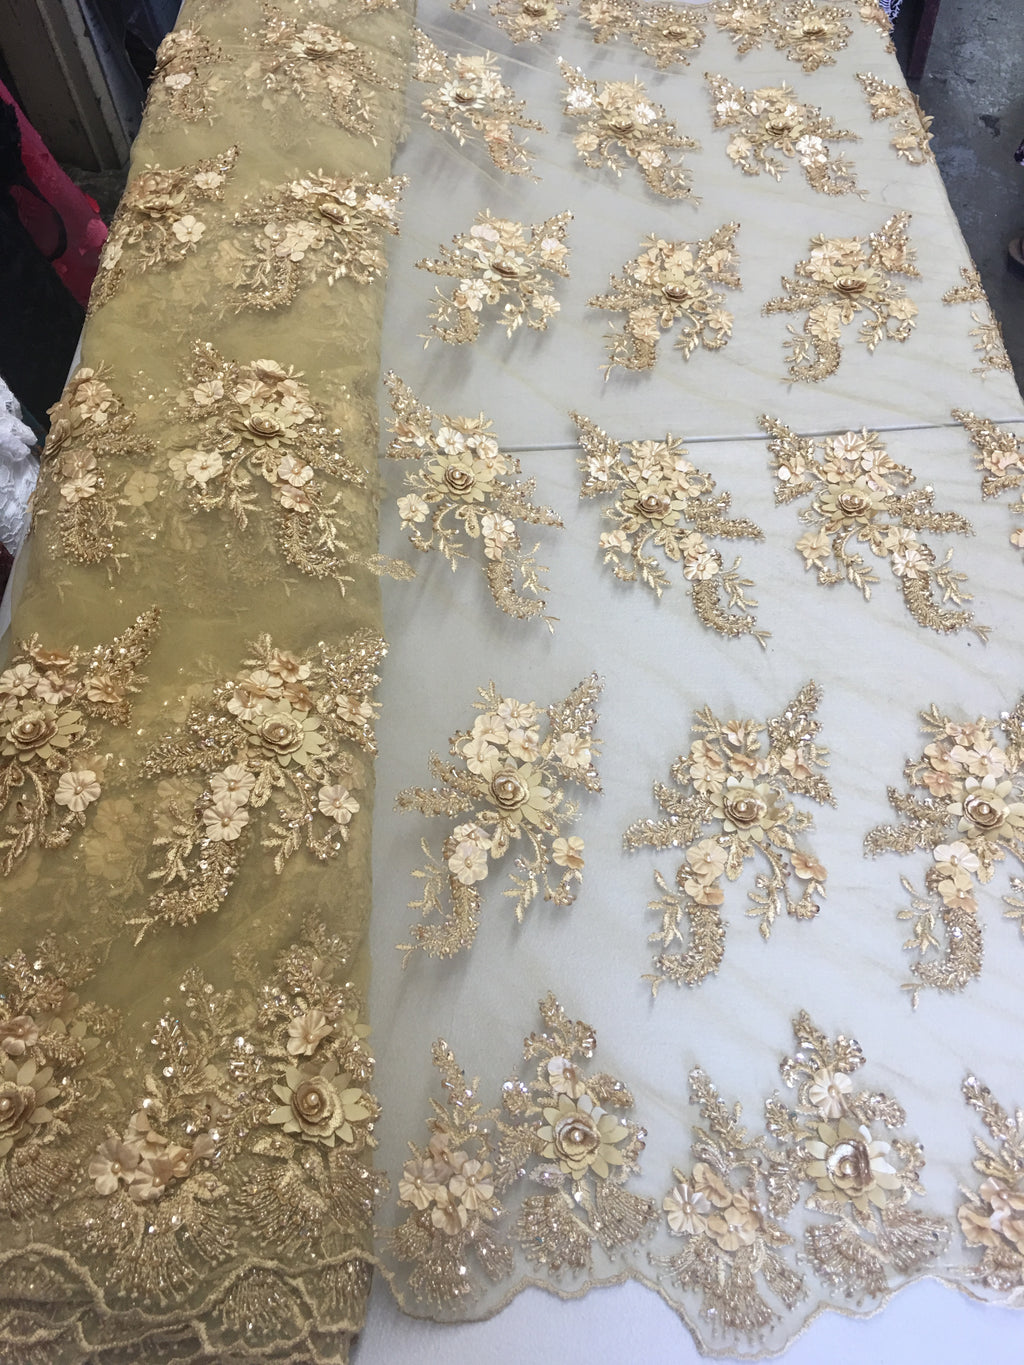 Gold Floral Fabric 3D Flower Bridal Beaded Fabric Heavy Embroidered Mesh Dress For Wedding Veil By The Yard